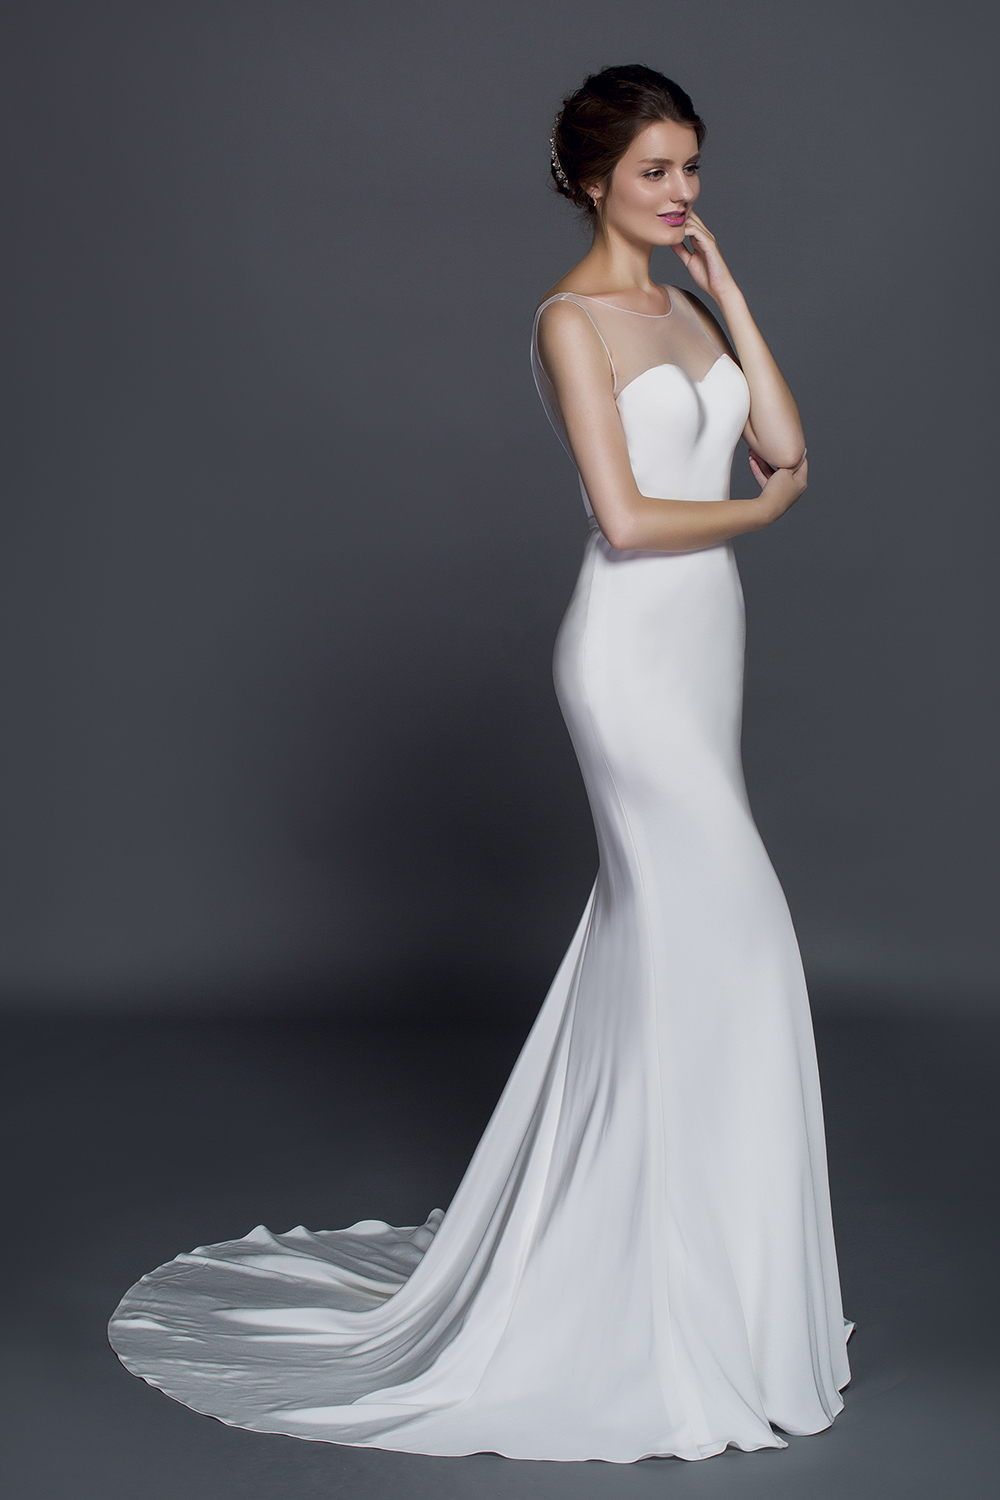 plus size silk crepe wedding gown with sheer illusion neckline and dainty  belt from curvy brides